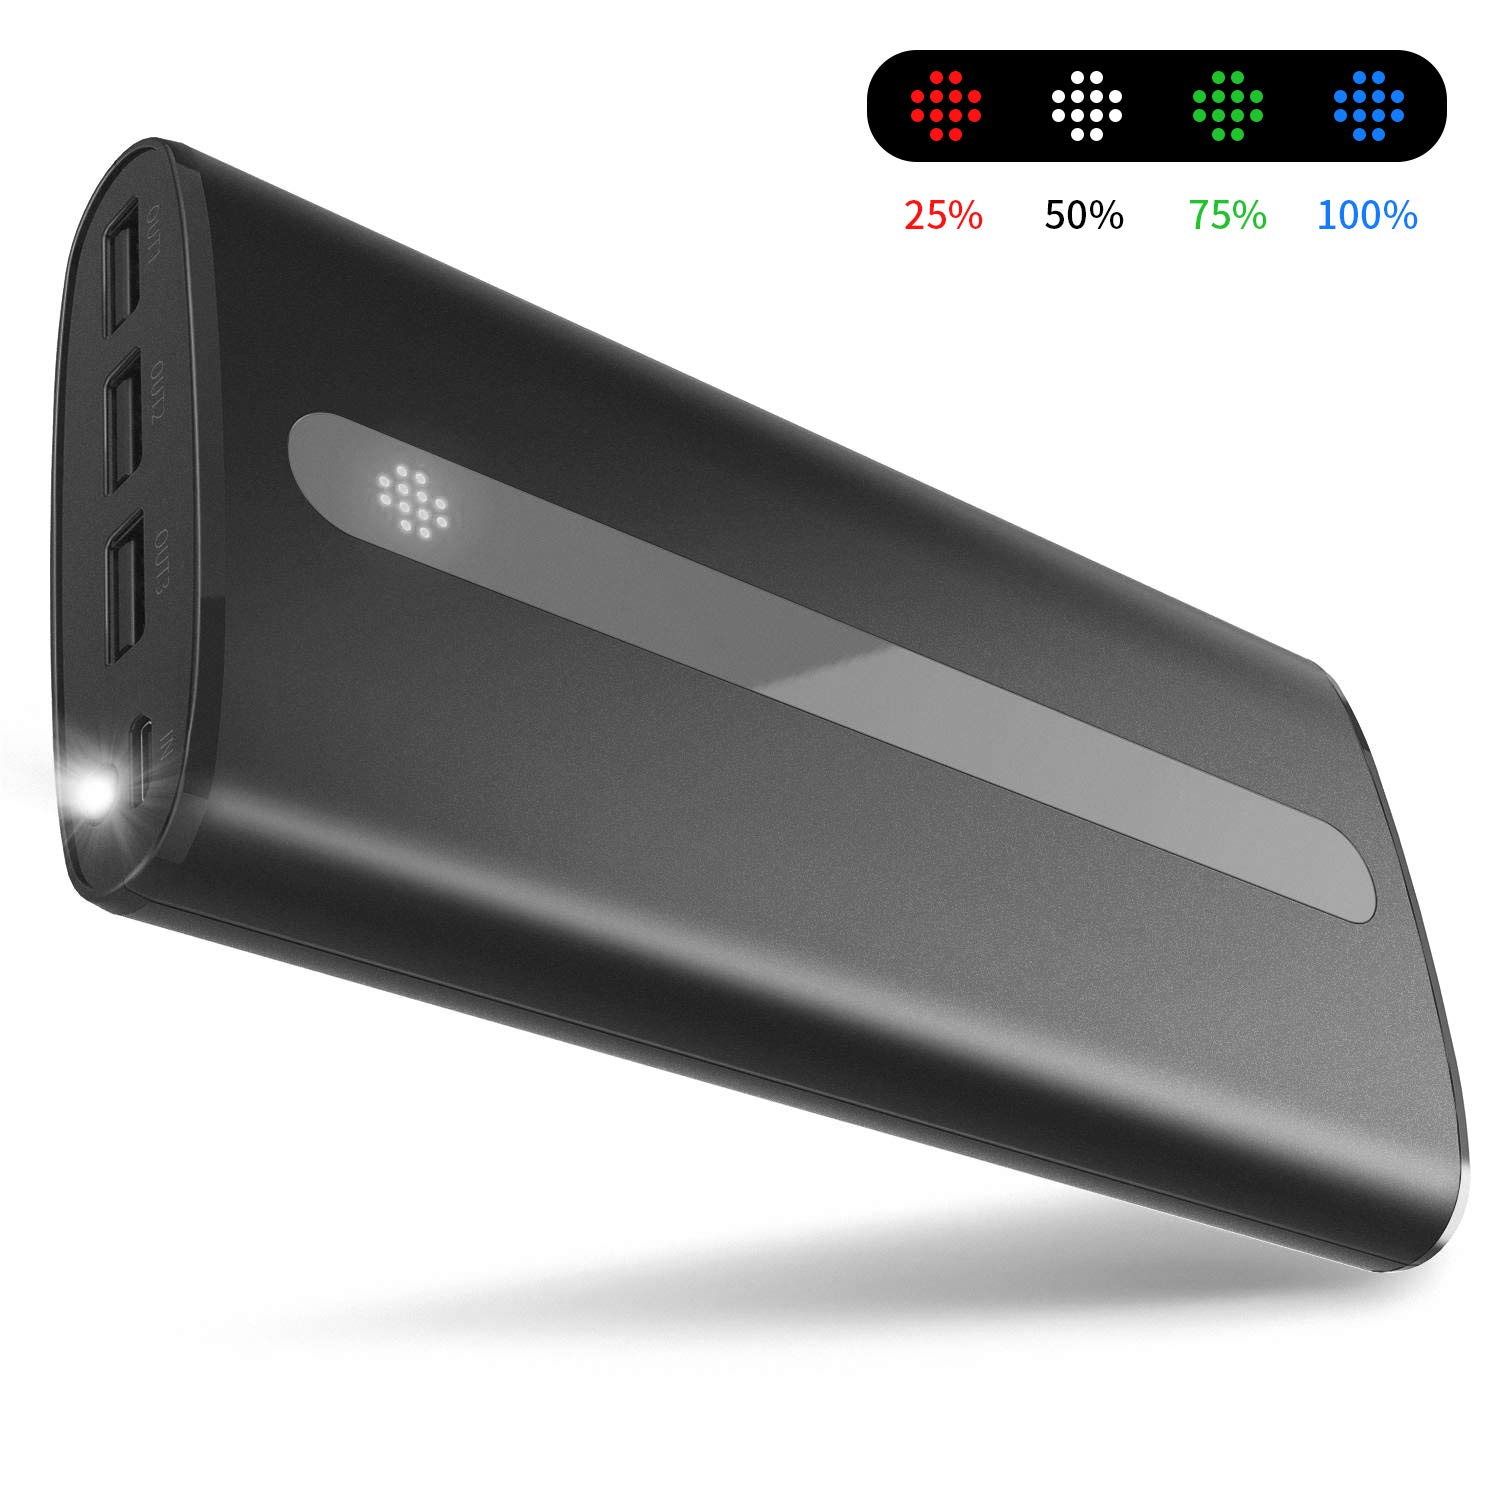 Sipu Power Bank mAh Portable Charger External Battery with 2 1A Input Port LED Lights and 3 Charging Ports for iPhone iPad Android Samsung Galaxy